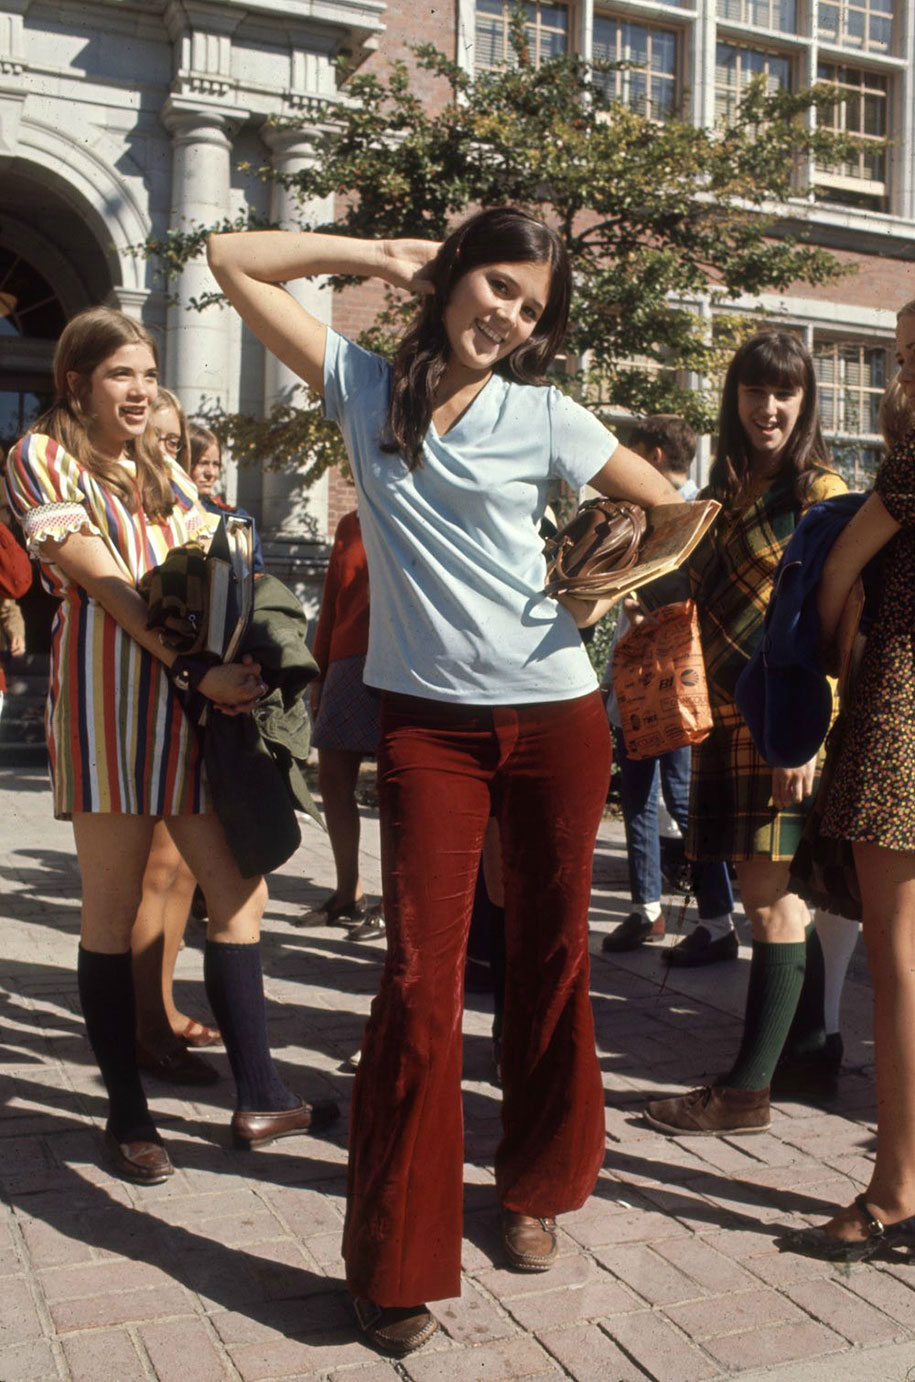 1969-hippie-high-school-counterculture-photography-3